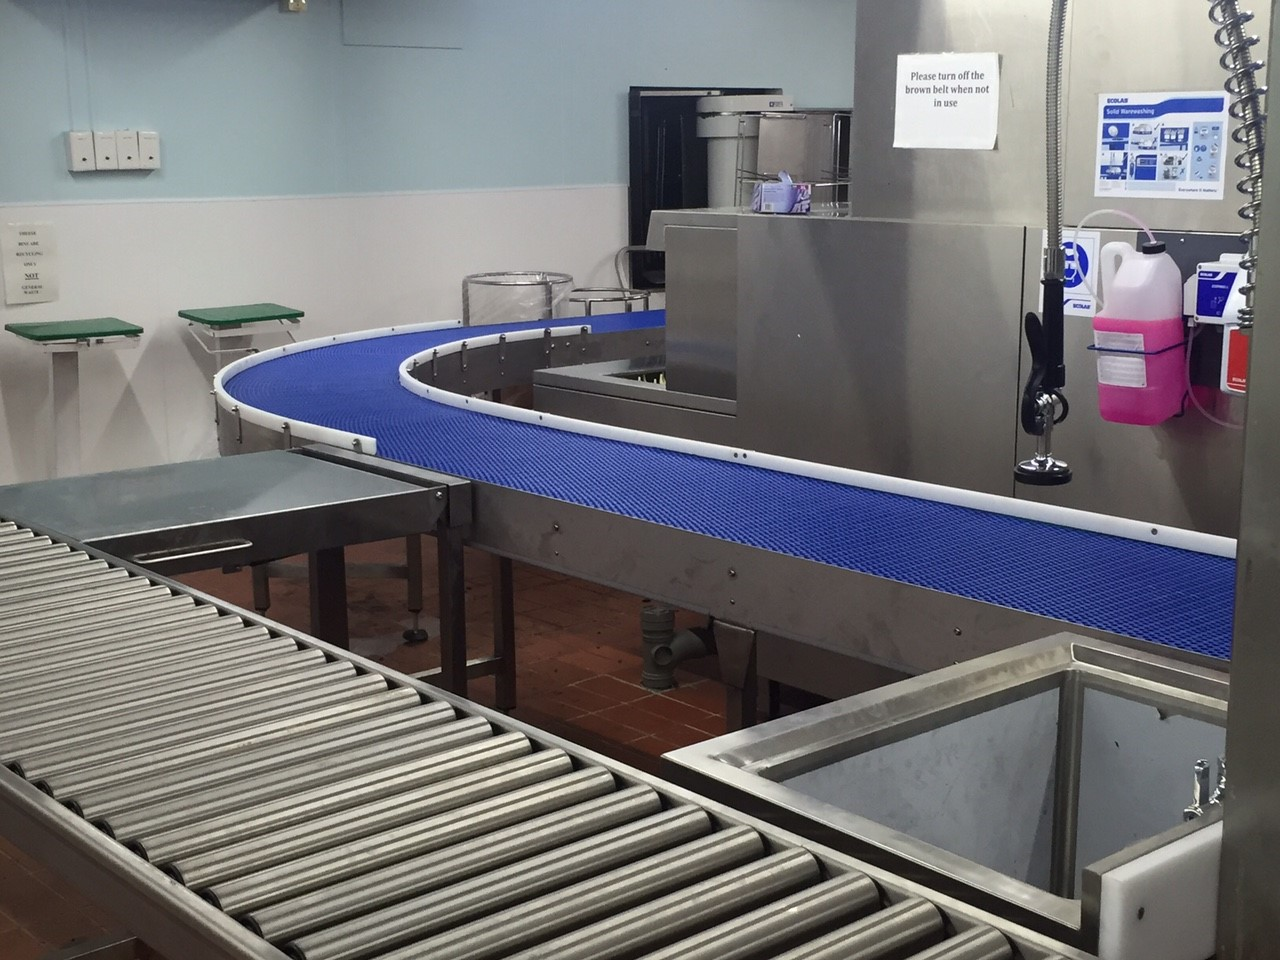 Stainless steel packing conveyors and work stations